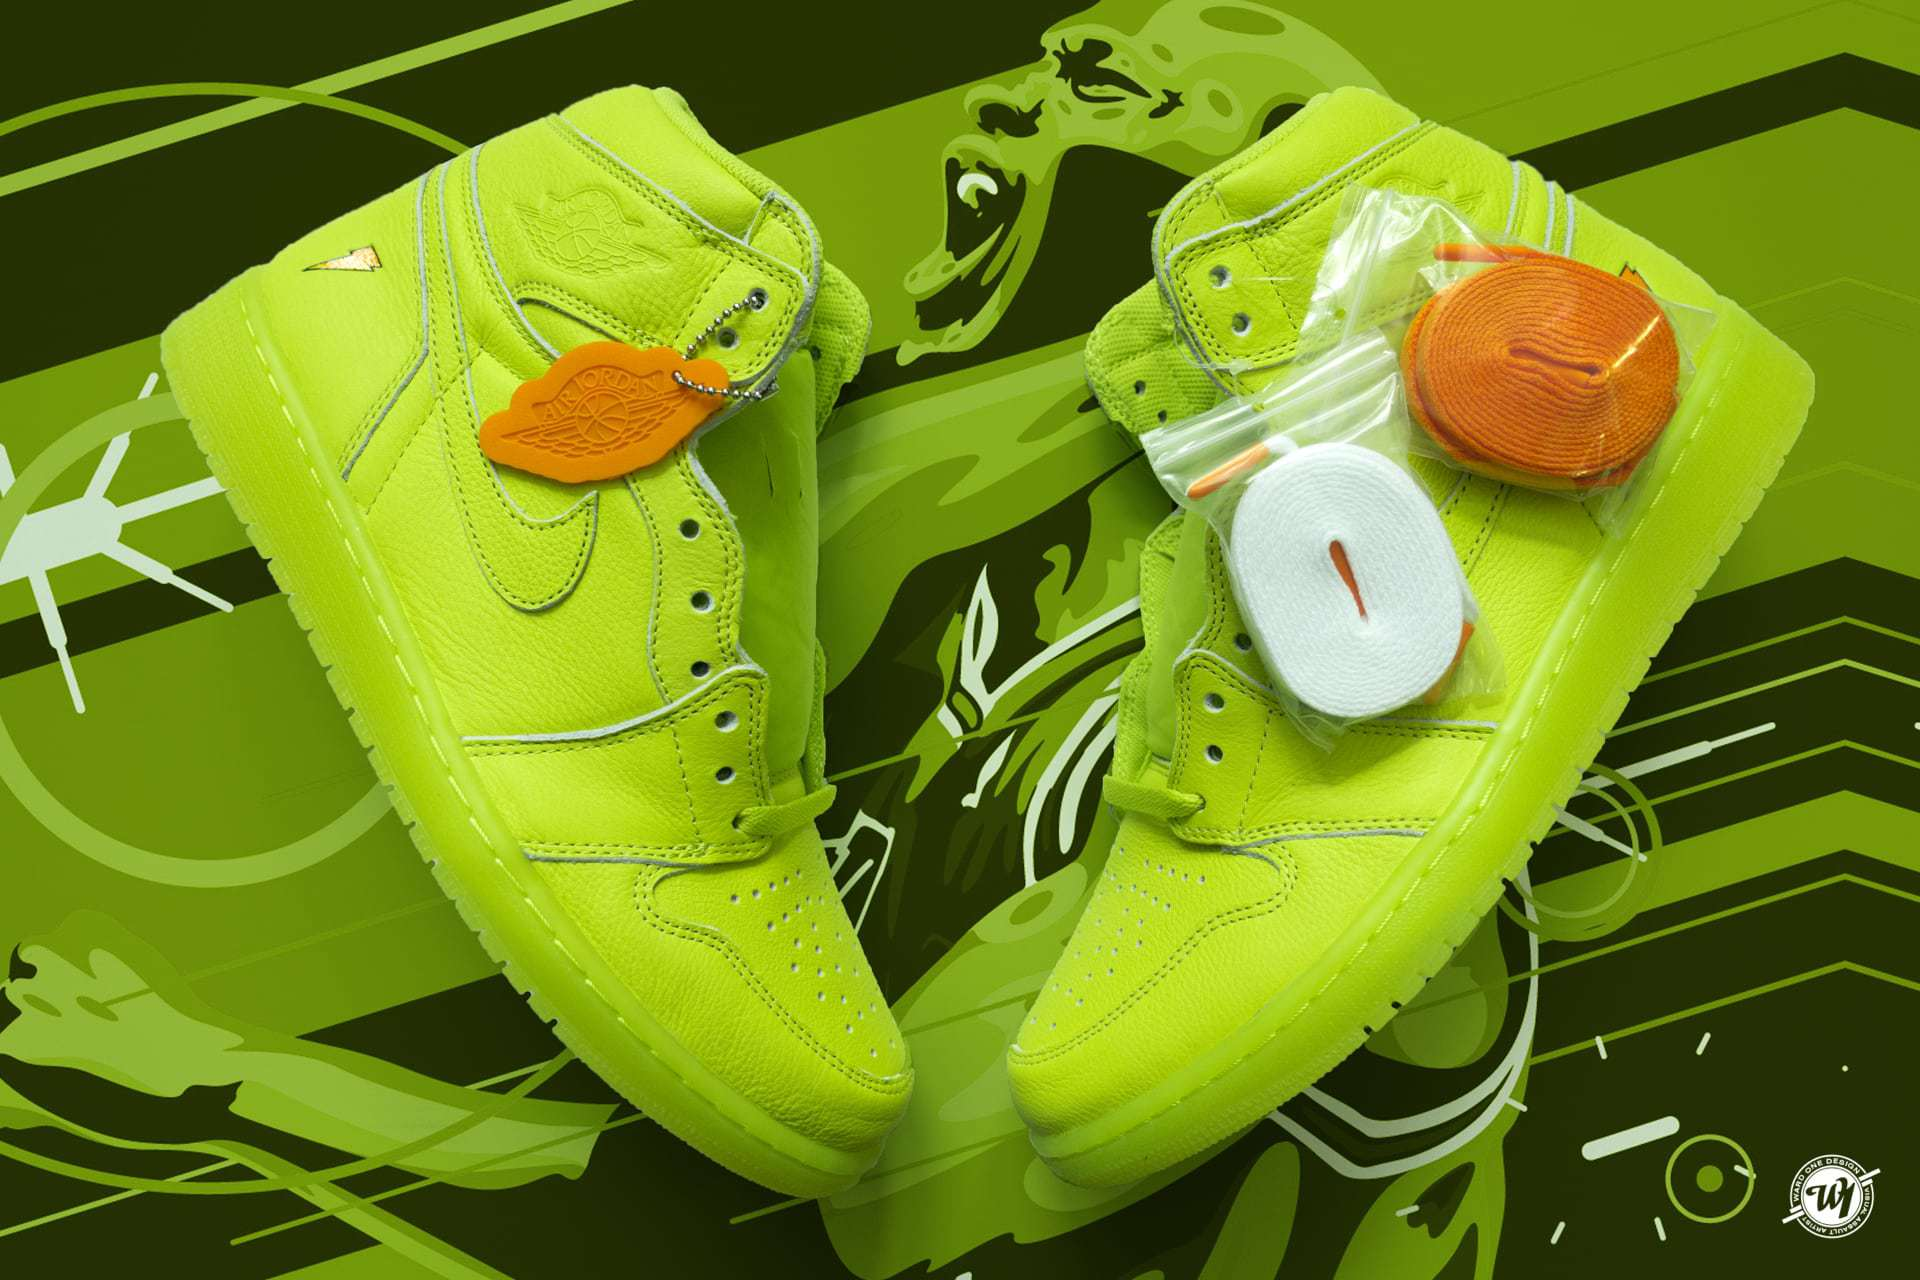 Air Jordan I • Lemon Lime Gatorade Ward 1 Shoes